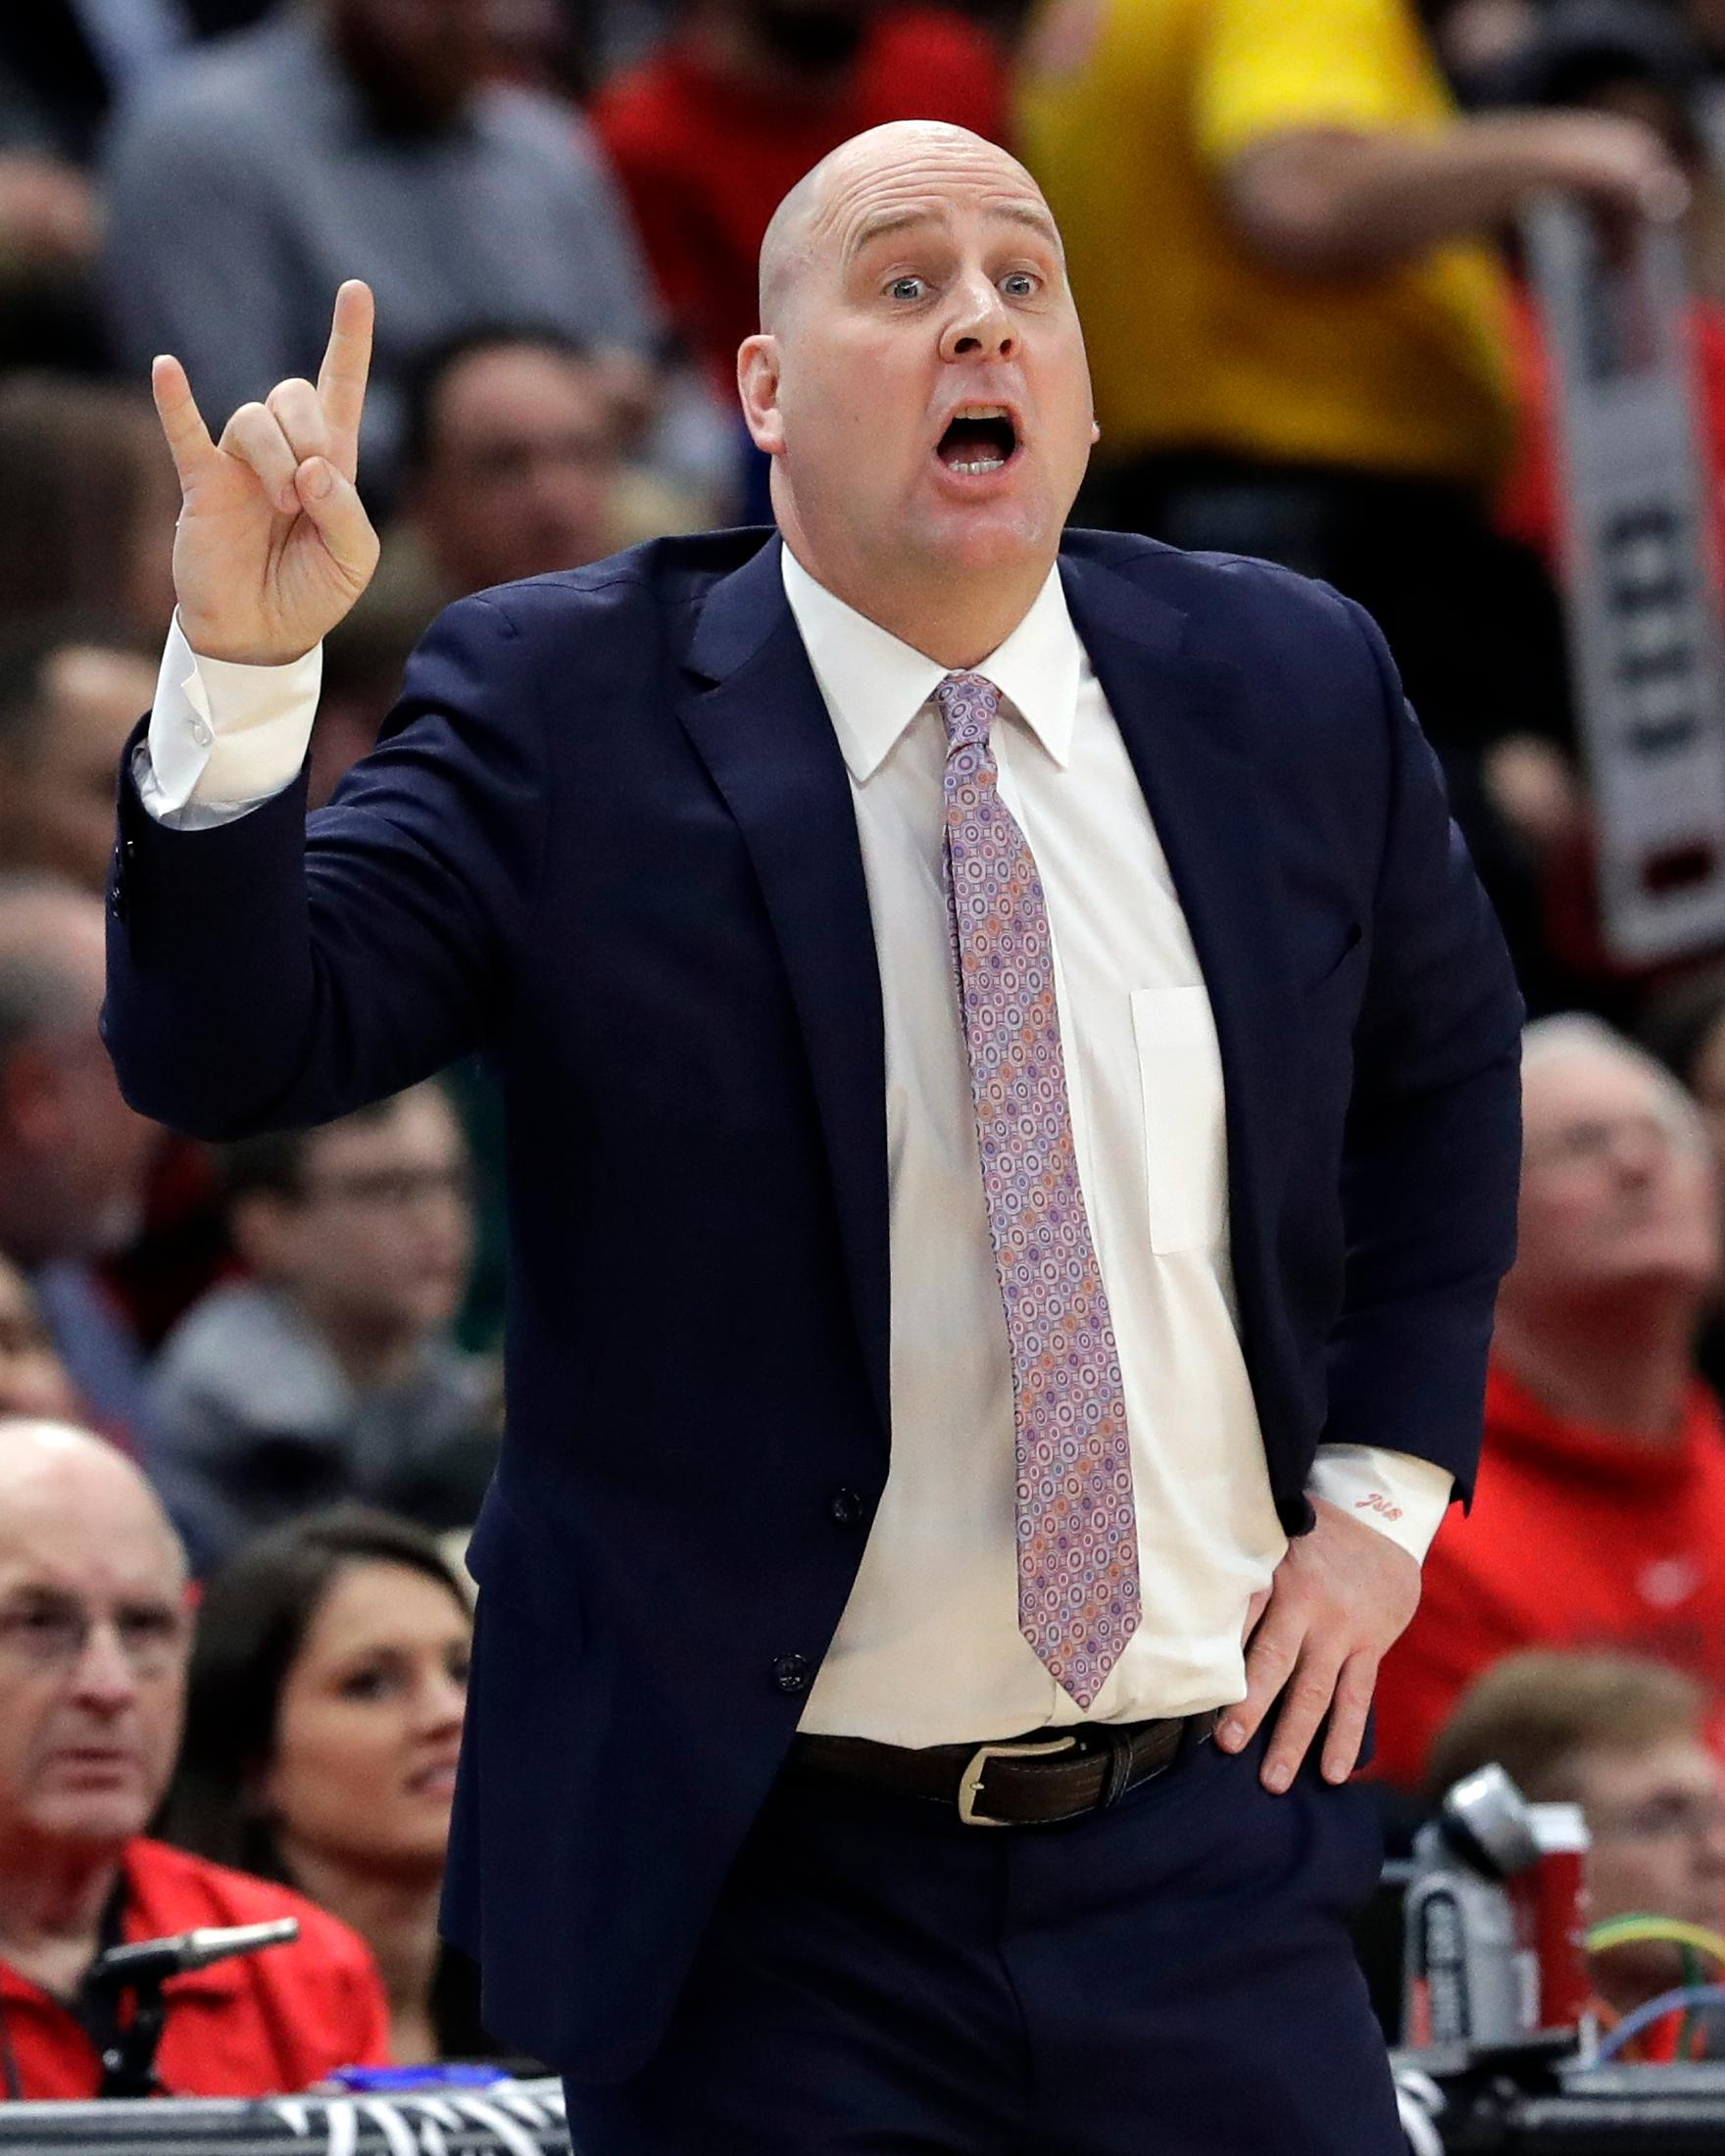 Chicago Bulls coach Jim Boylen gestures during the first half of the team's NBA basketball game against the Washington Wizards, Wednesday, March 20, 2019, in Chicago. (AP Photo/Nam Y. Huh)